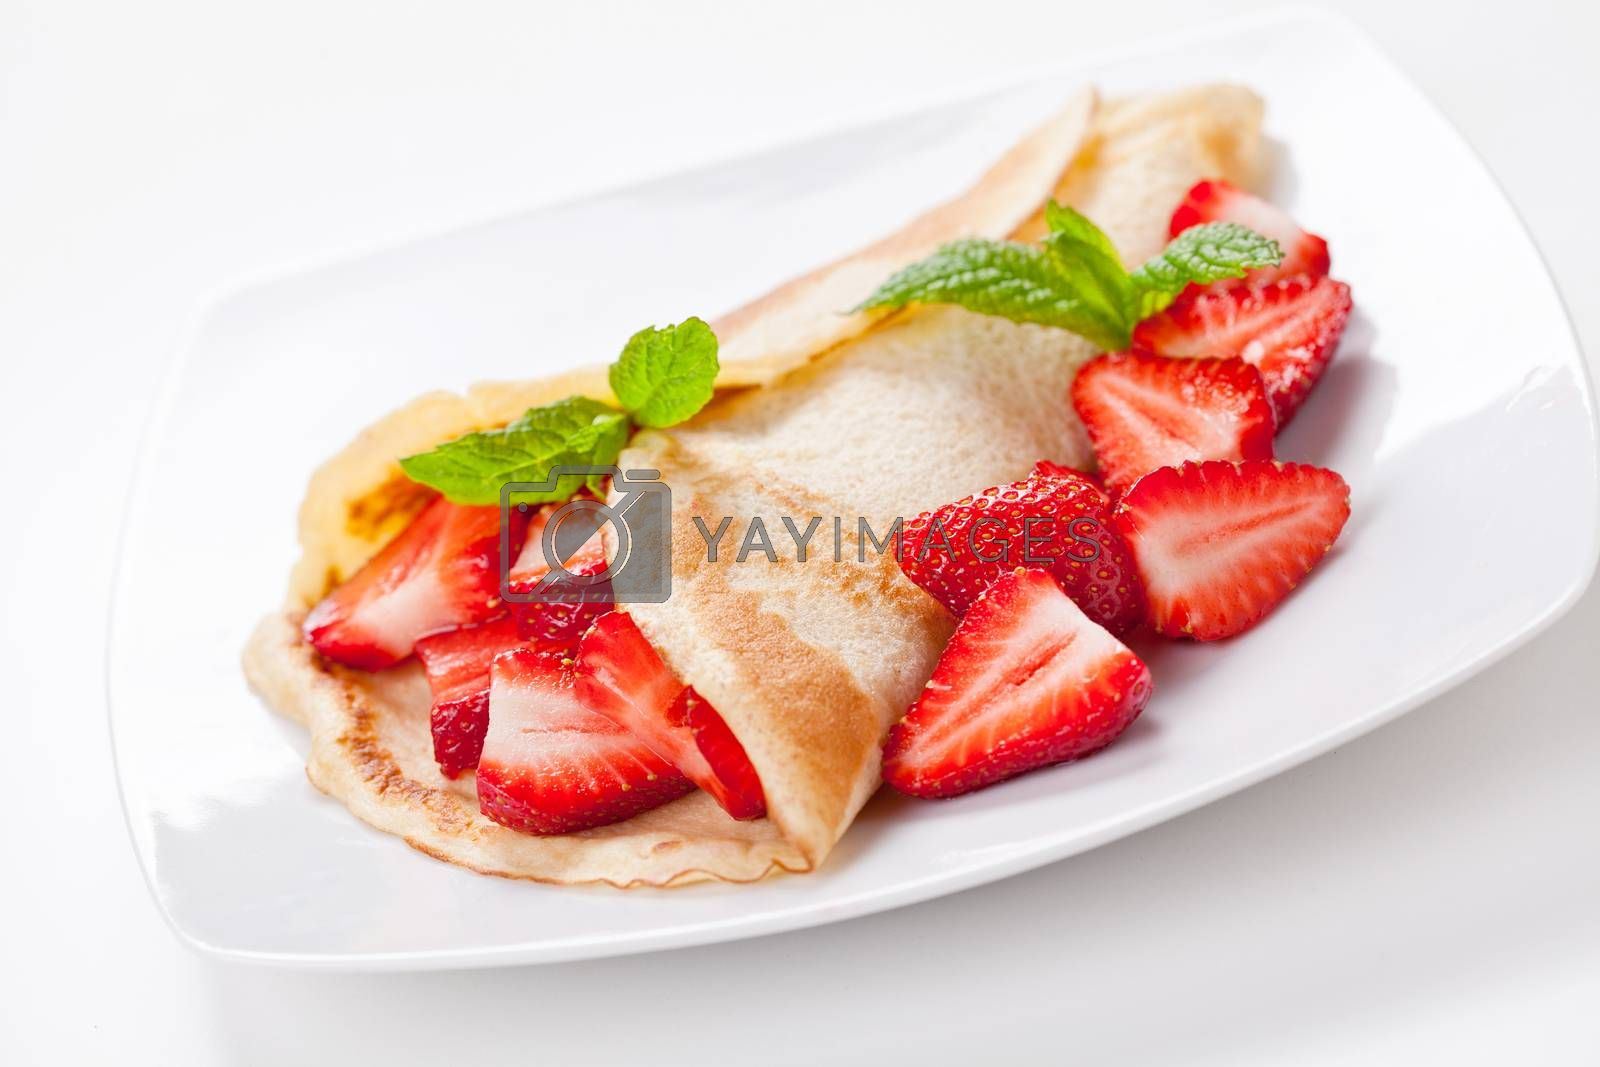 Crepe With Organic Strawberries by mpessaris